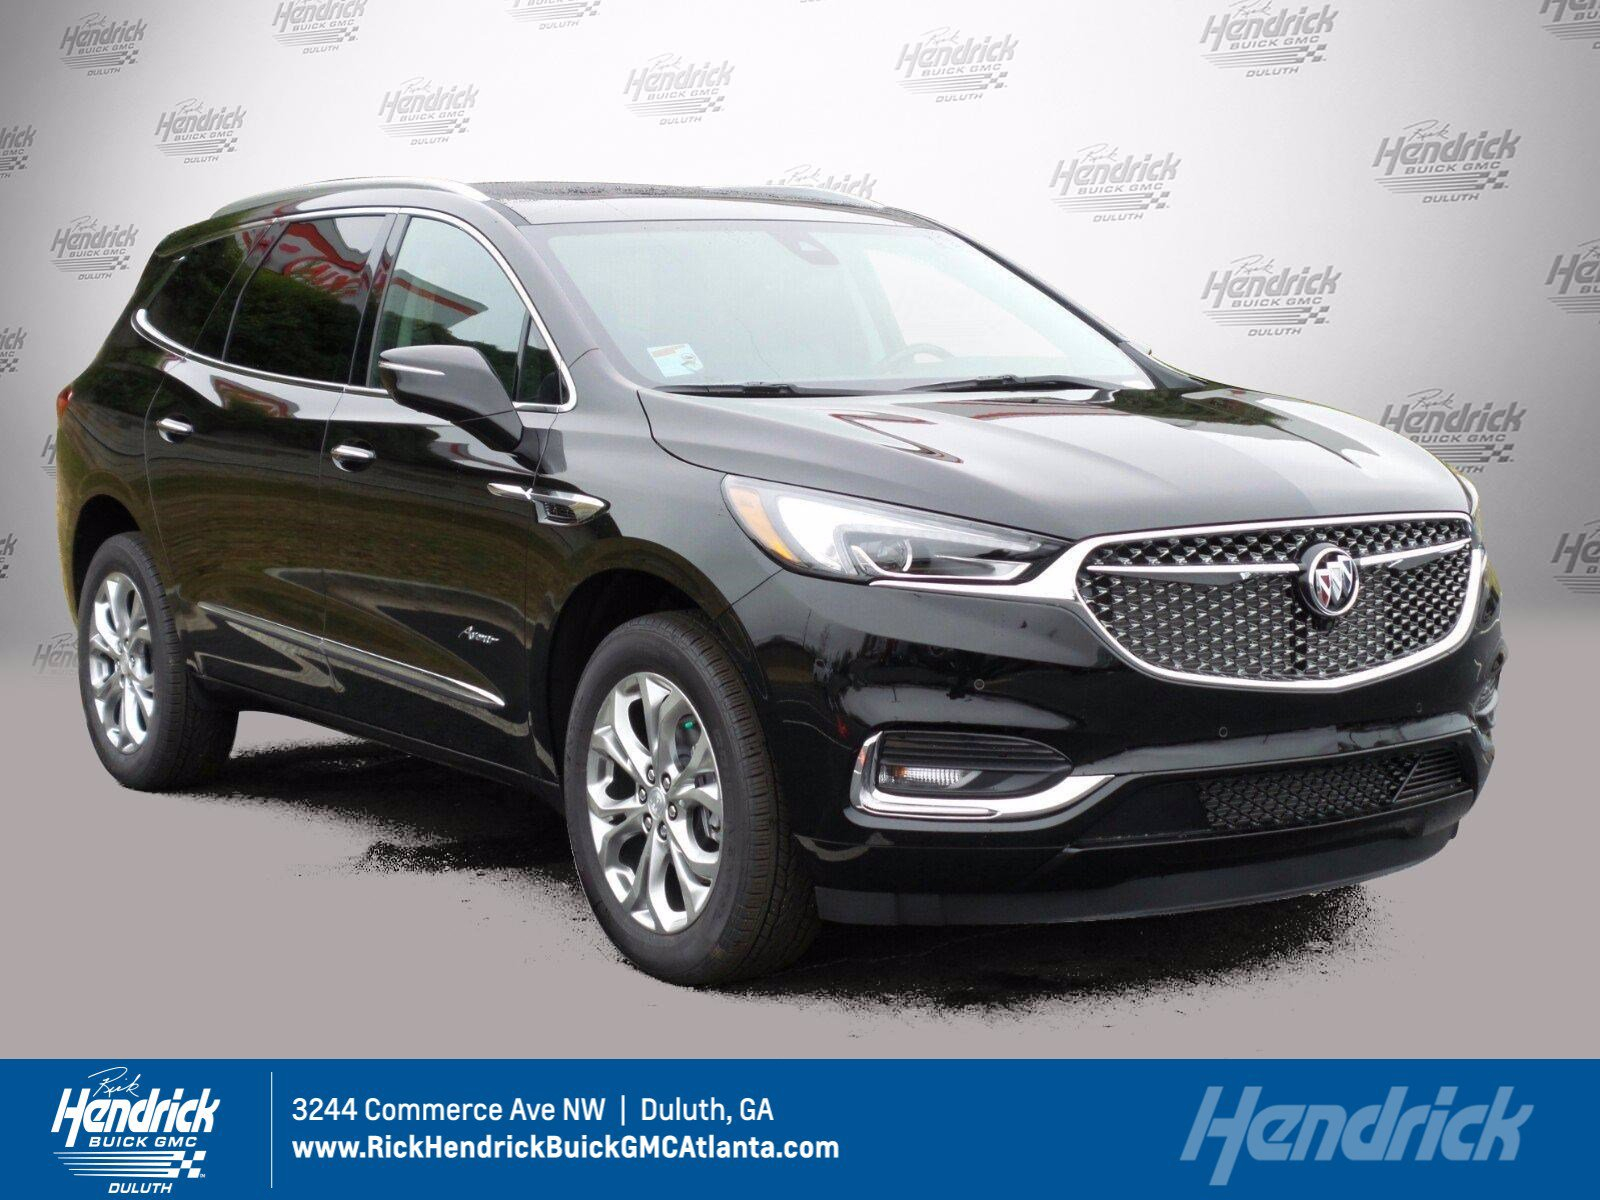 New 2020 Buick Enclave Avenir With Navigation New 2021 Buick Enclave Manual, Maintenance Schedule, Mileage